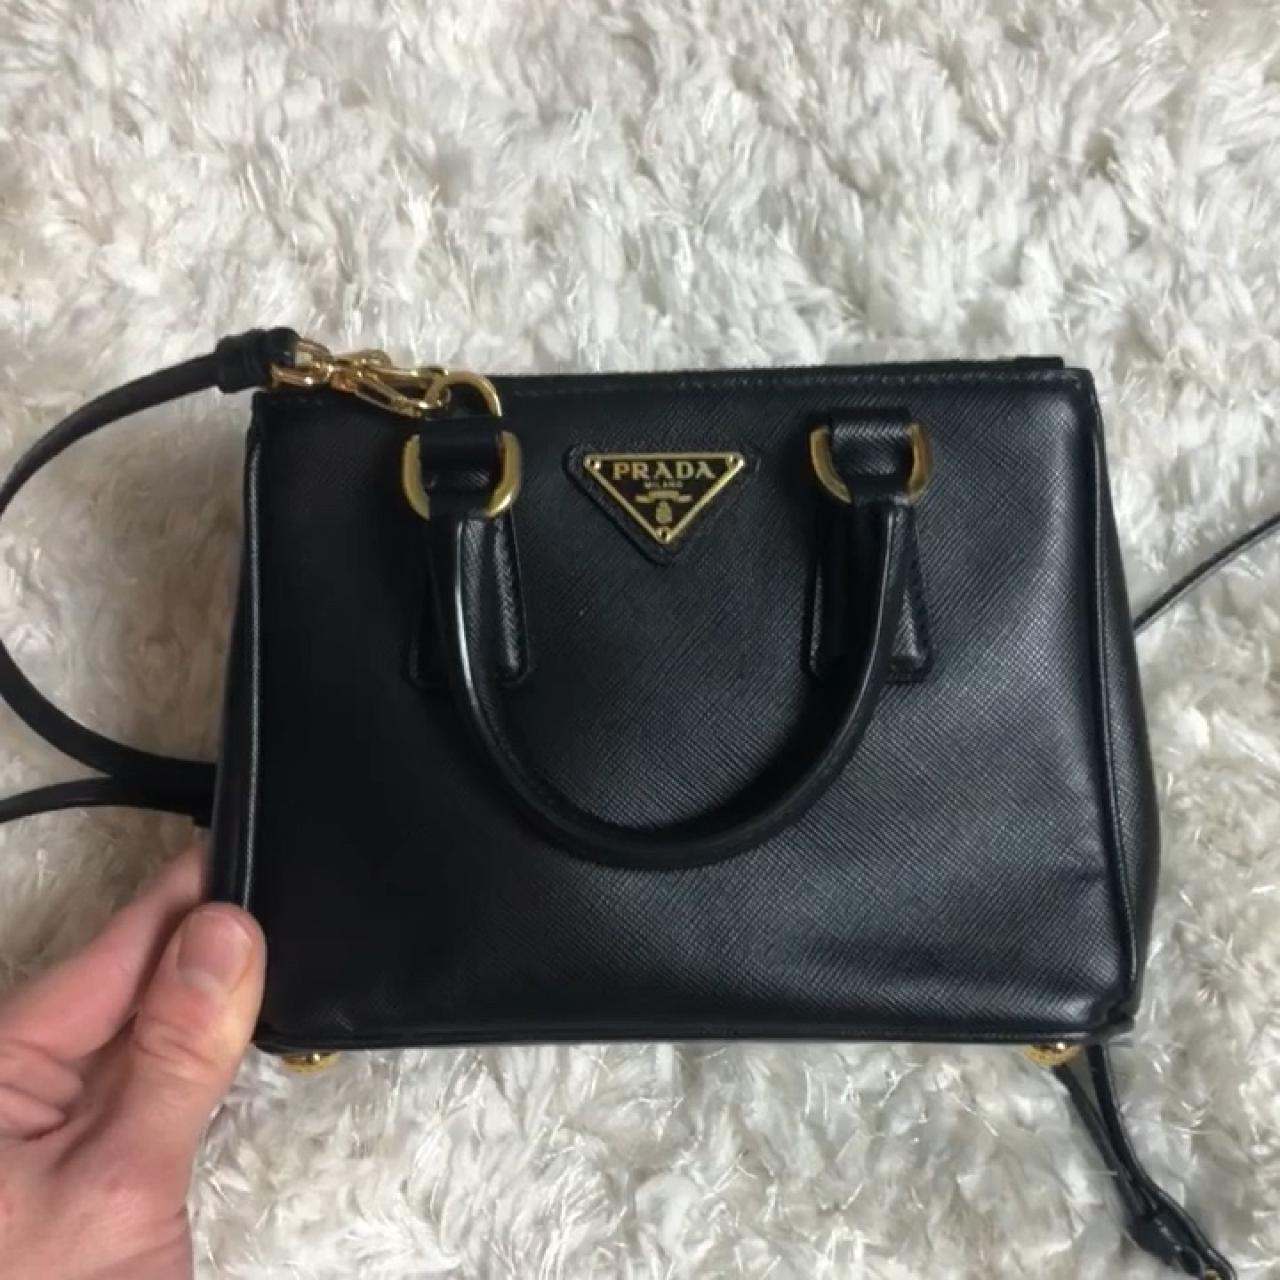 762354db6d8b DEPOP. MINI PRADA BAG!